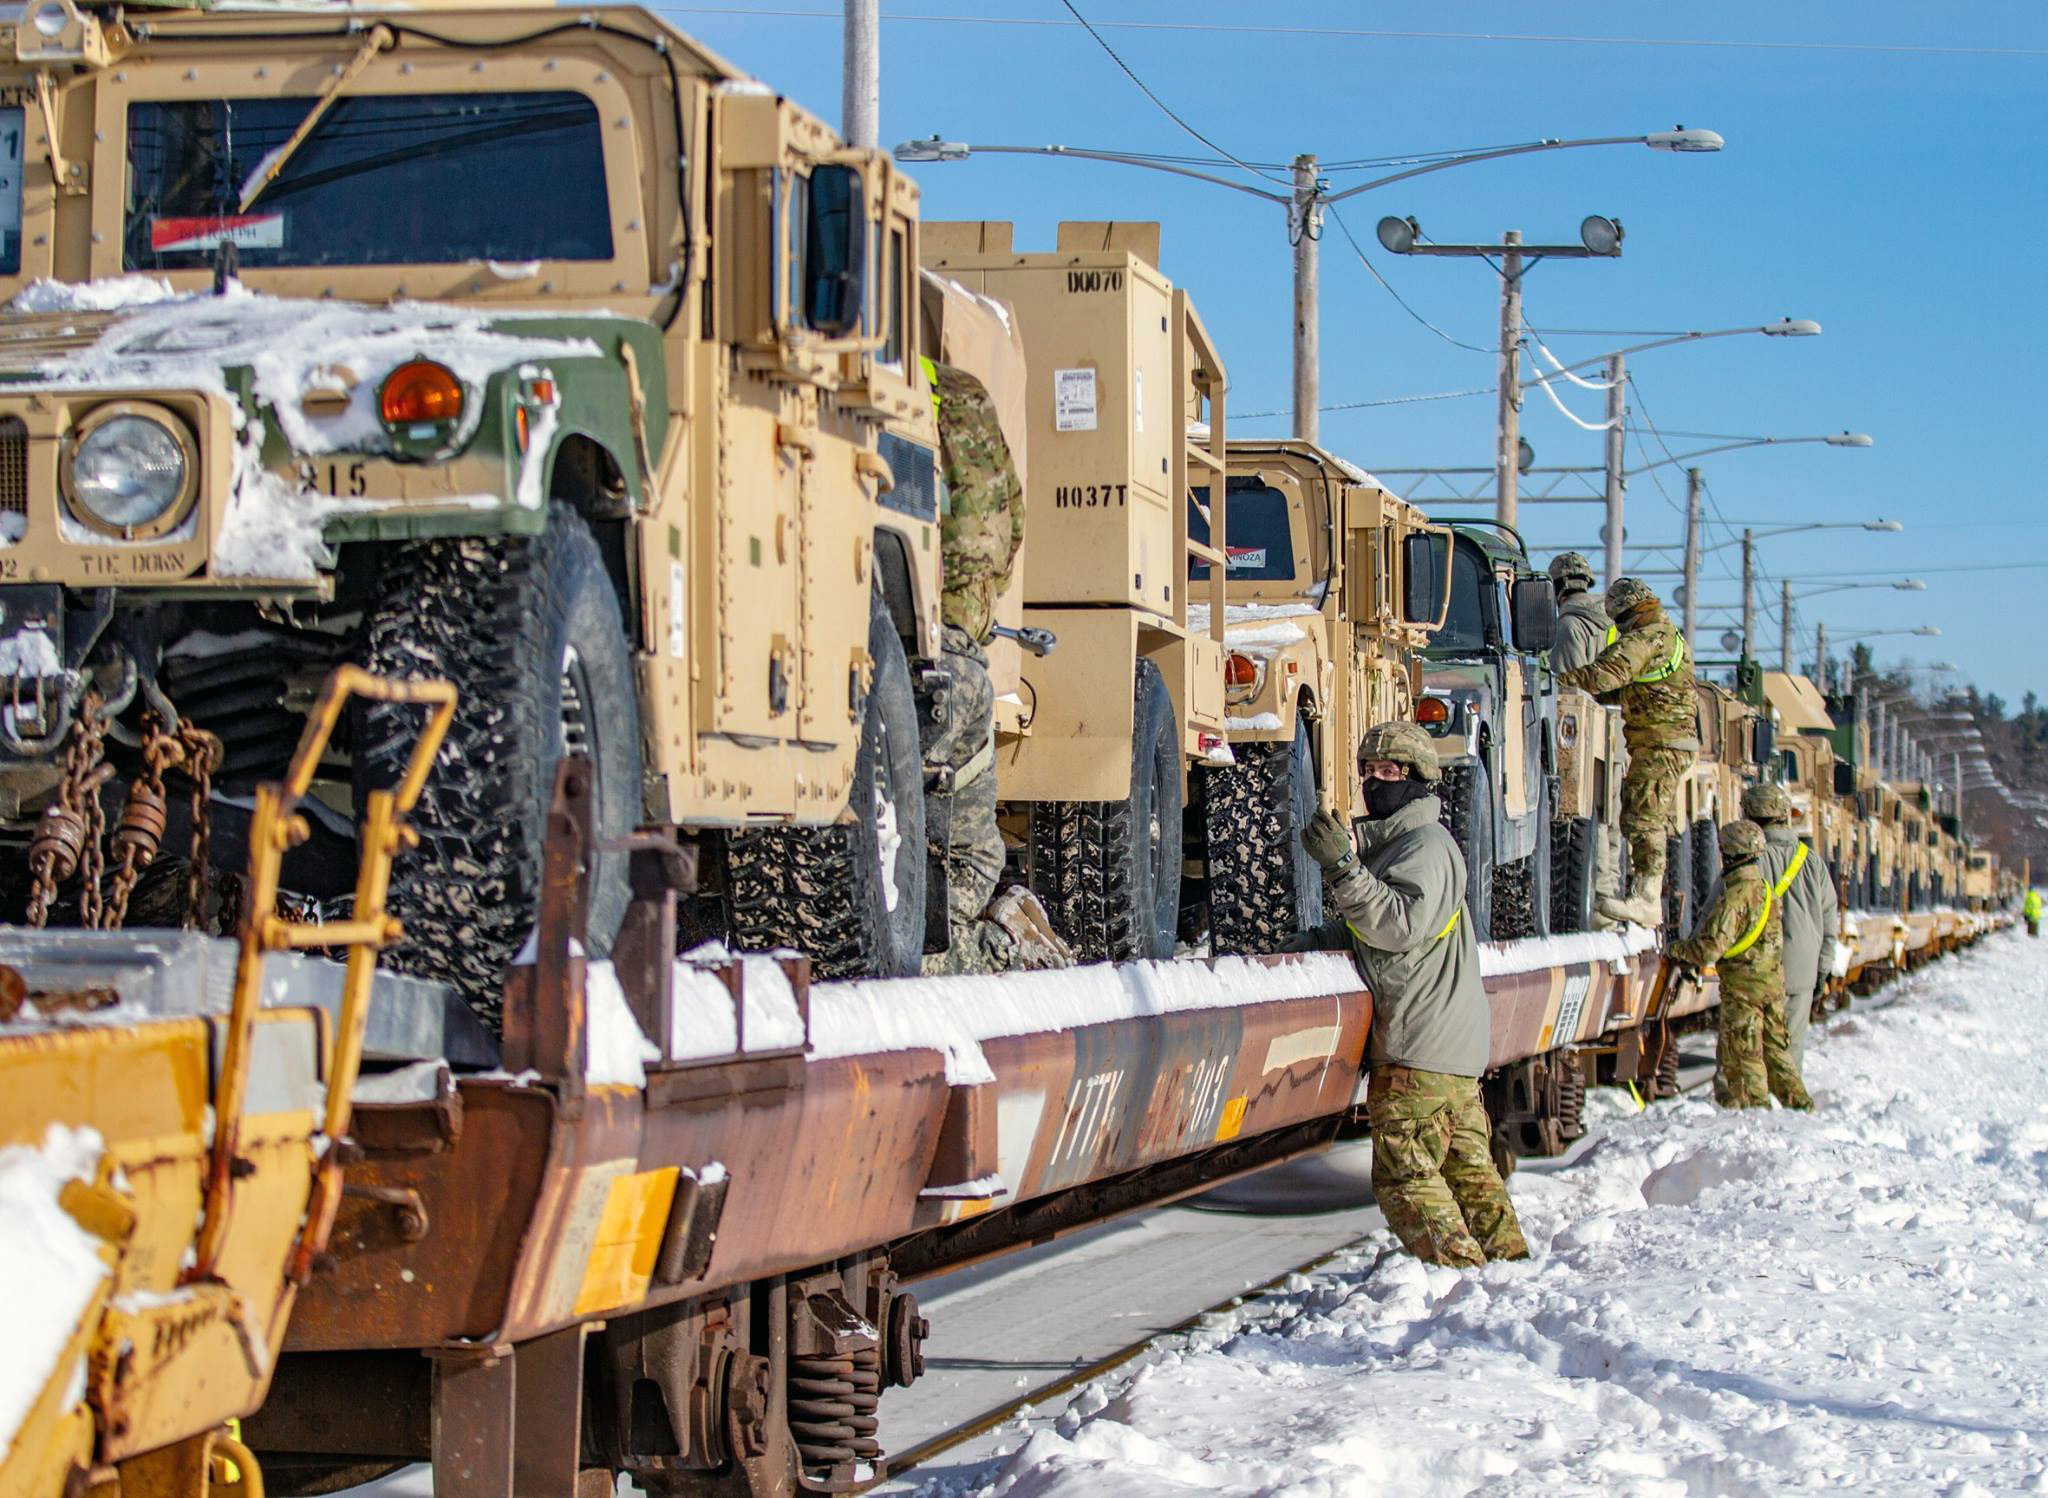 Soldiers from 10th Mountain Division take the final steps to make sure the vehicles on the railhead are ready for transport to Fort Polk, La., on Feb. 14, 2019. (Army)